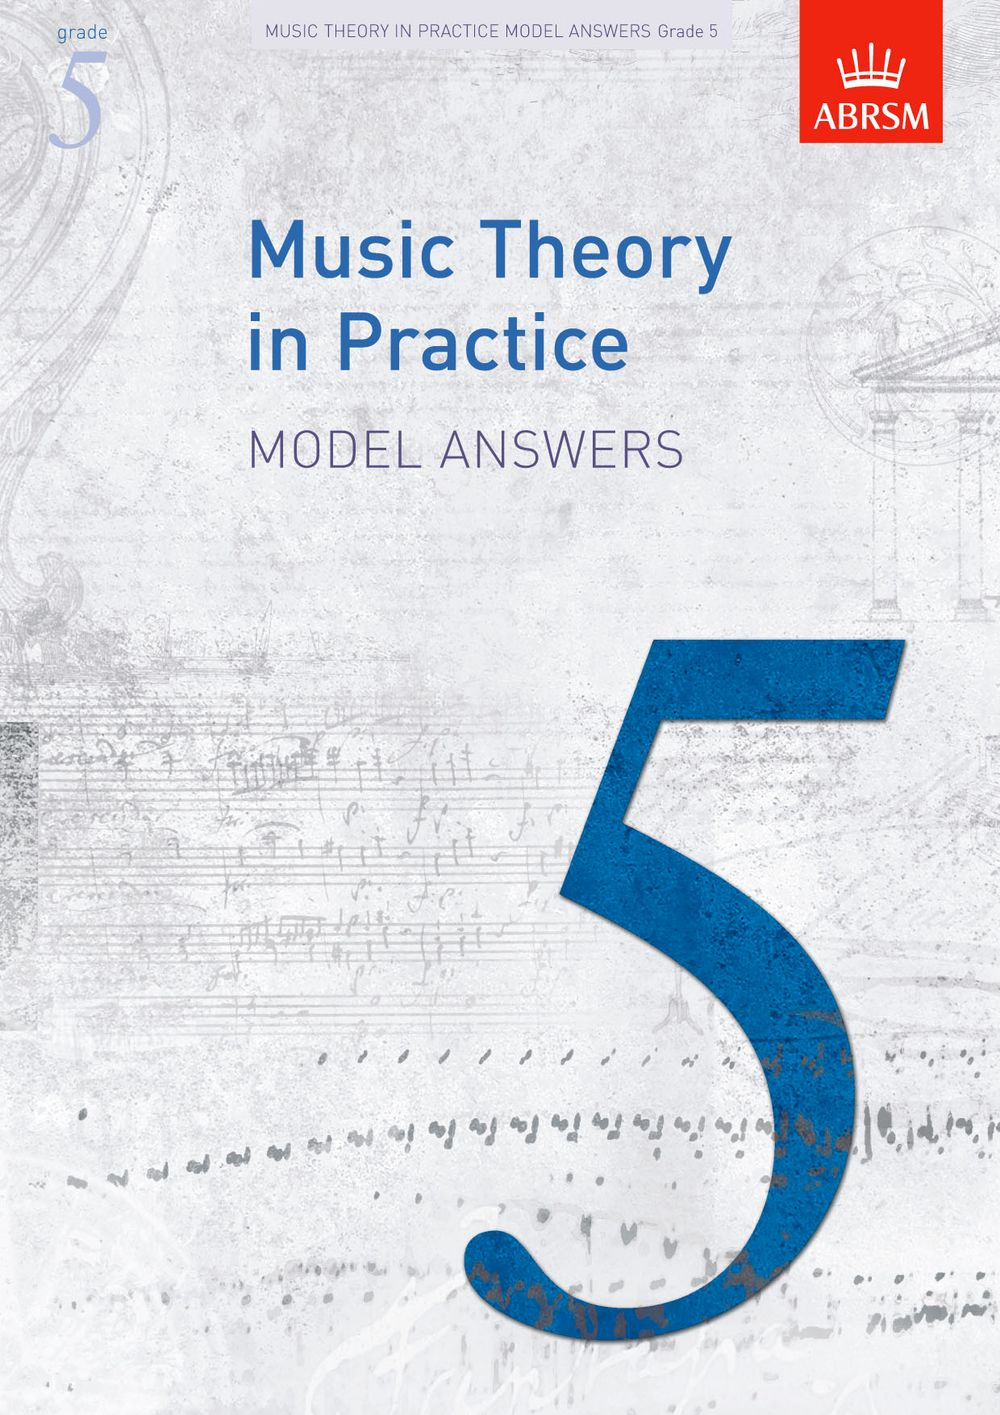 Music Theory in Practice Model Answers  Grade 5: Theory